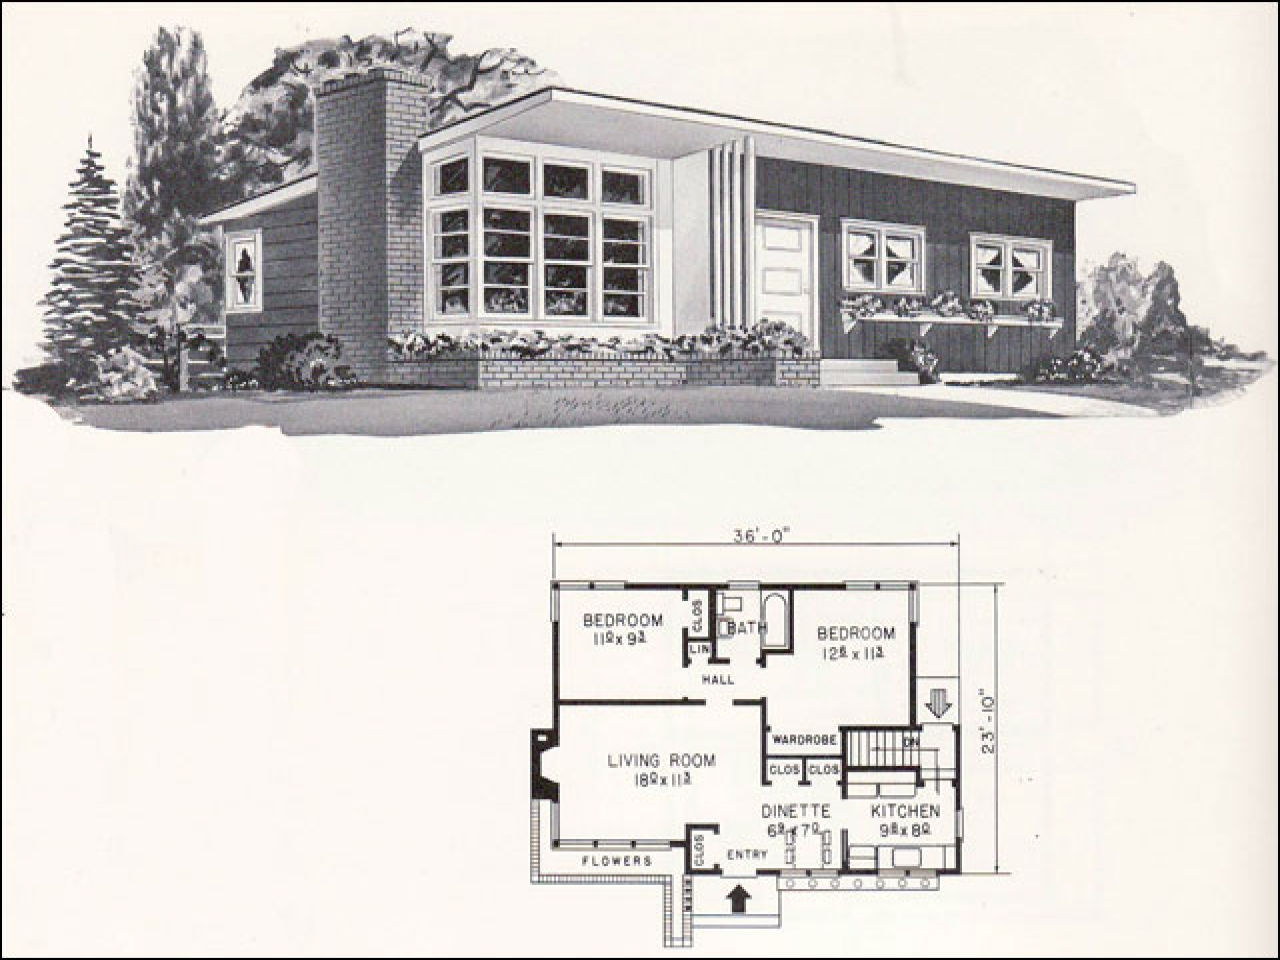 H House Athens Iihih moreover Rustic Cabin Plans Under Sq Ft Rustic Cabin Plans With Wrap Around Porch Lrg Ad Da A F in addition Southern Cottage Style House Plans Small Cottage House Plans With Porches Lrg Ff Dfa A E F further Prefab Cement Homes moreover Arabian House Designs Floor Plans Double Floor Modern Home Ideas. on modern house plans 1000 sq ft